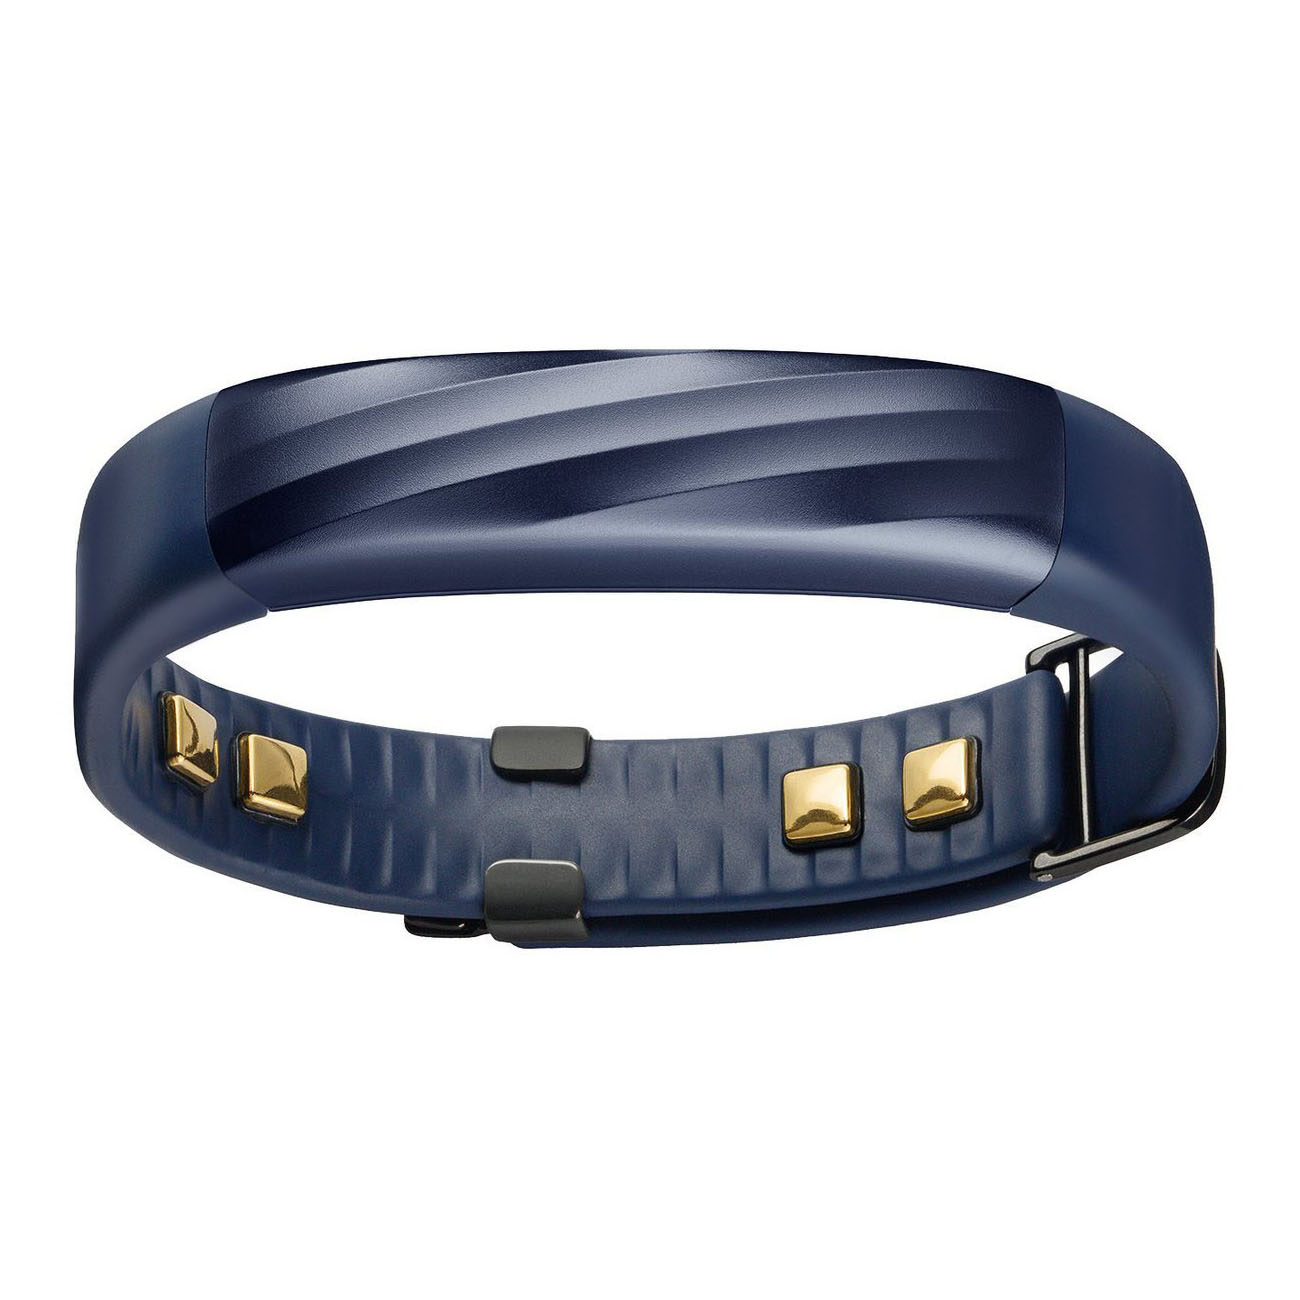 Jawbone UP3 Bluetooth Wireless Heart Rate Monitor, Sleep and Fitness Tracker